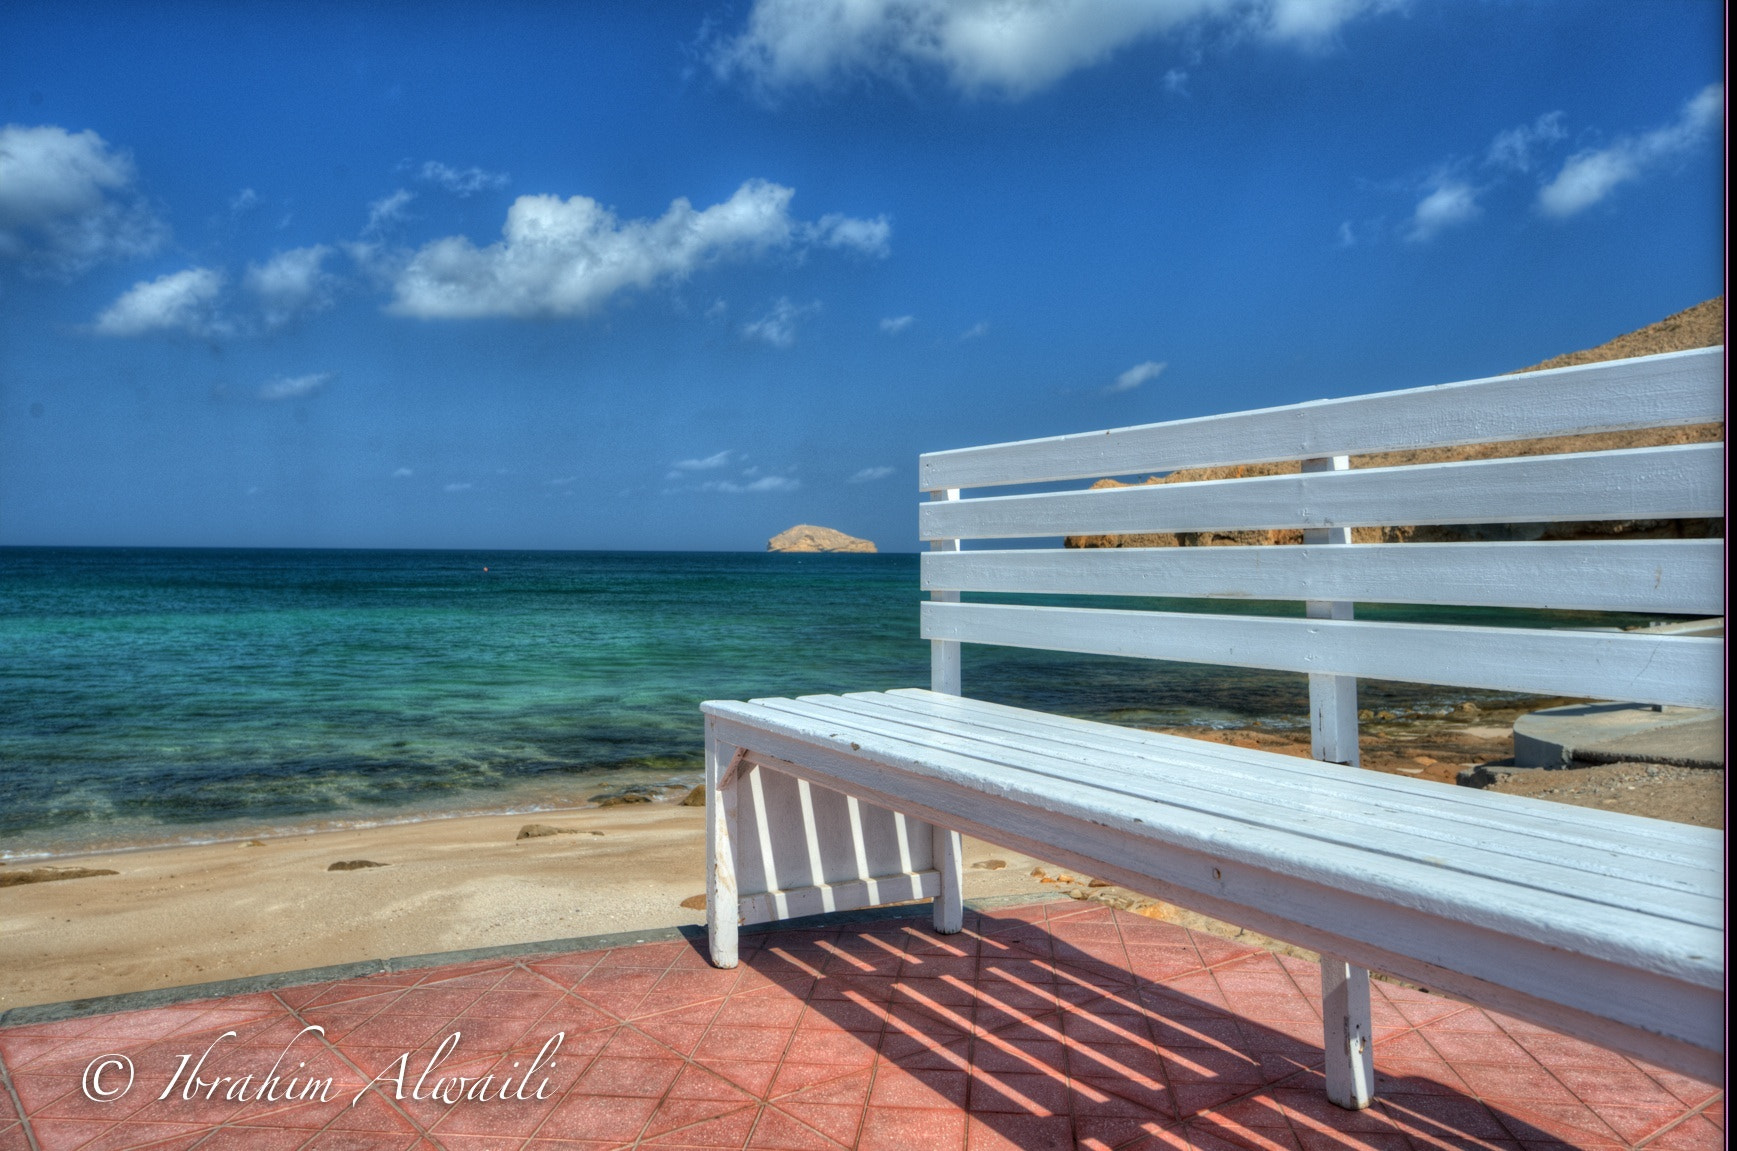 Photograph Alone by the sea by Ibrahim AlWaili on 500px